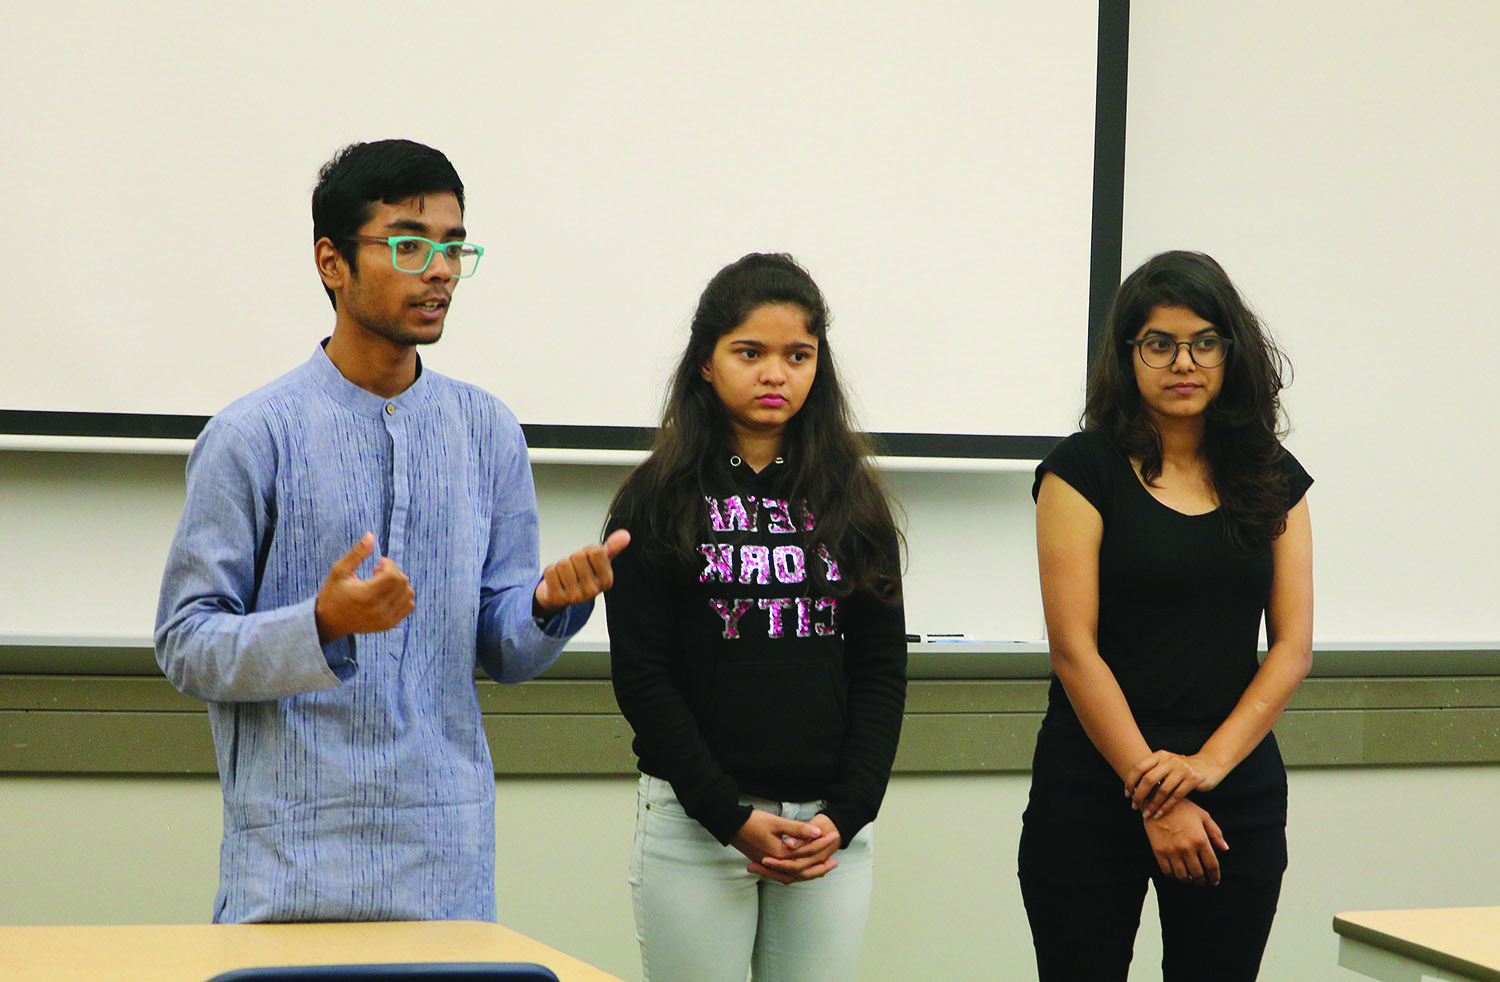 <strong>PHOTO BY Debra McRoberts</strong><br> Global spotlight on India was presented by freshmen Agricluture Sourav Ranjan, freshman Business Management Mayuri Shelar and freshman Human Resources Rekha Rayka in Cedar Hall on Sept. 17